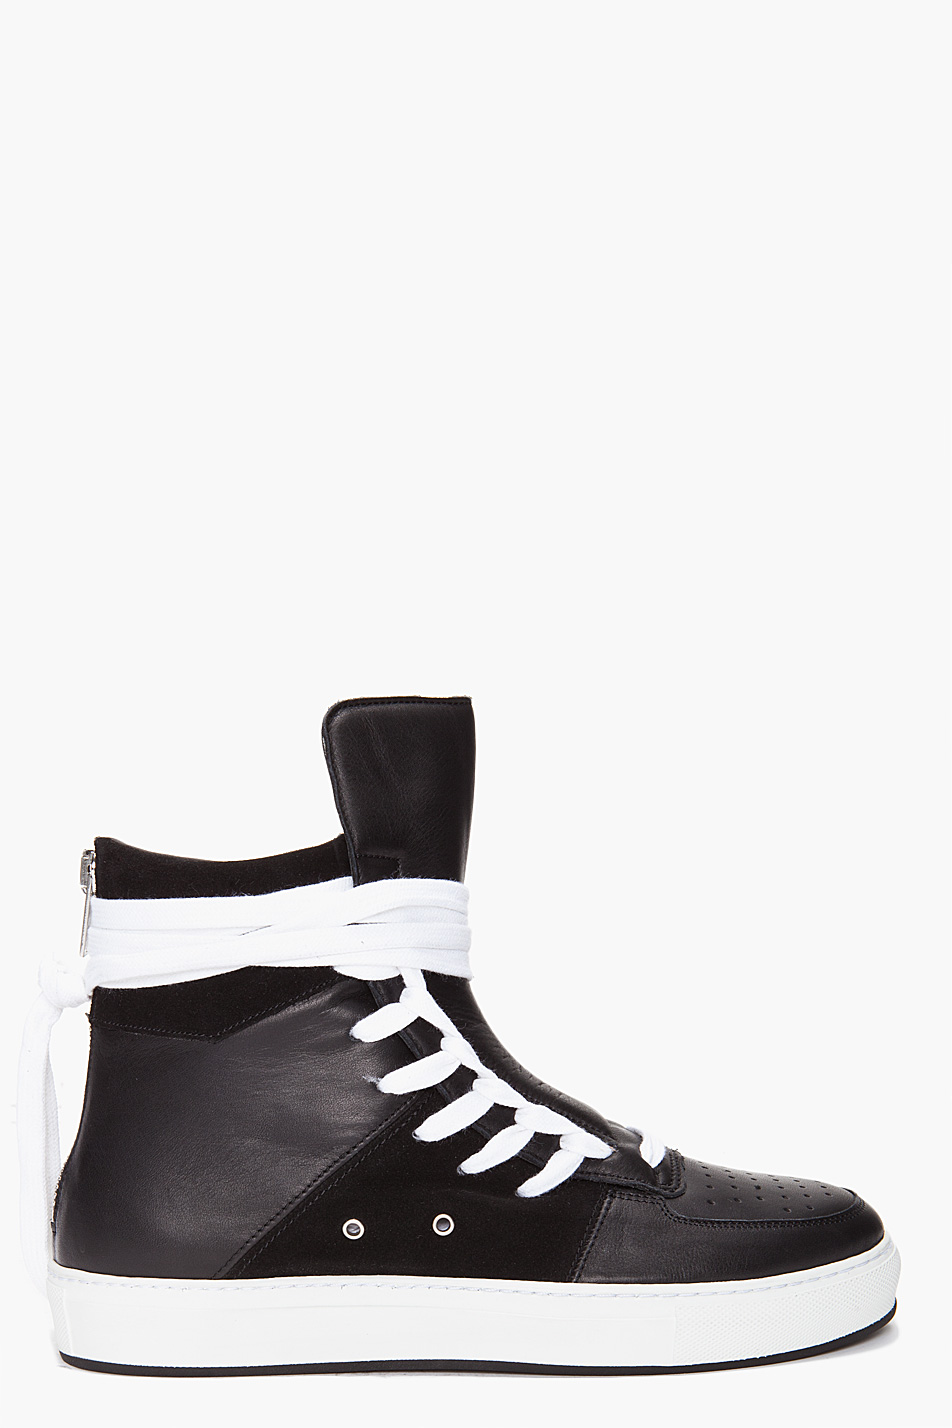 110009c3f9c3f8 Lyst - Kris Van Assche Surgery Sneakers in Black for Men